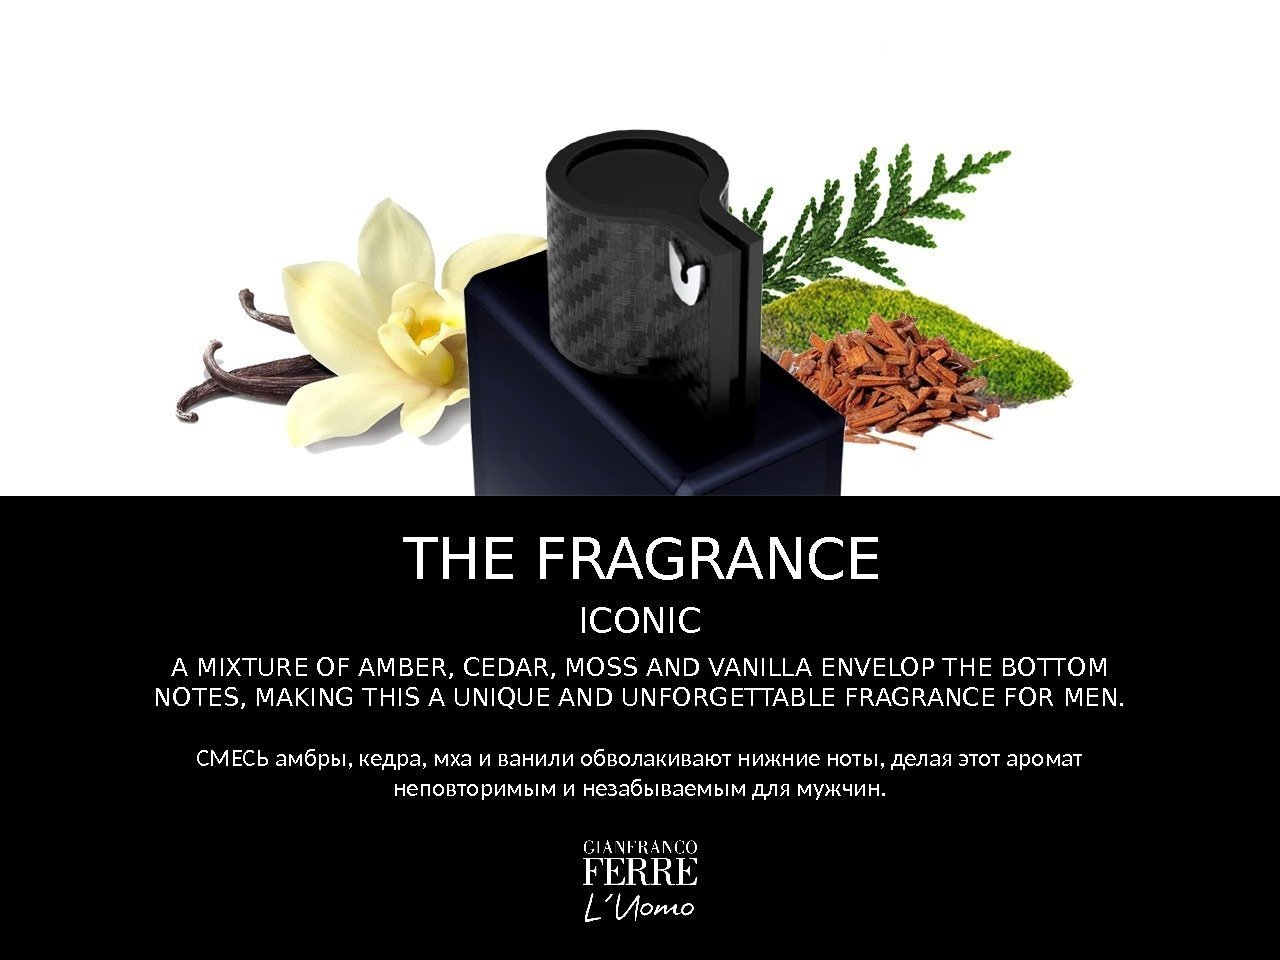 THE FRAGRANCE ICONIC A MIXTURE OF AMBER, CEDAR, MOSS AND VANILLA ENVELOP THE BOTTOM